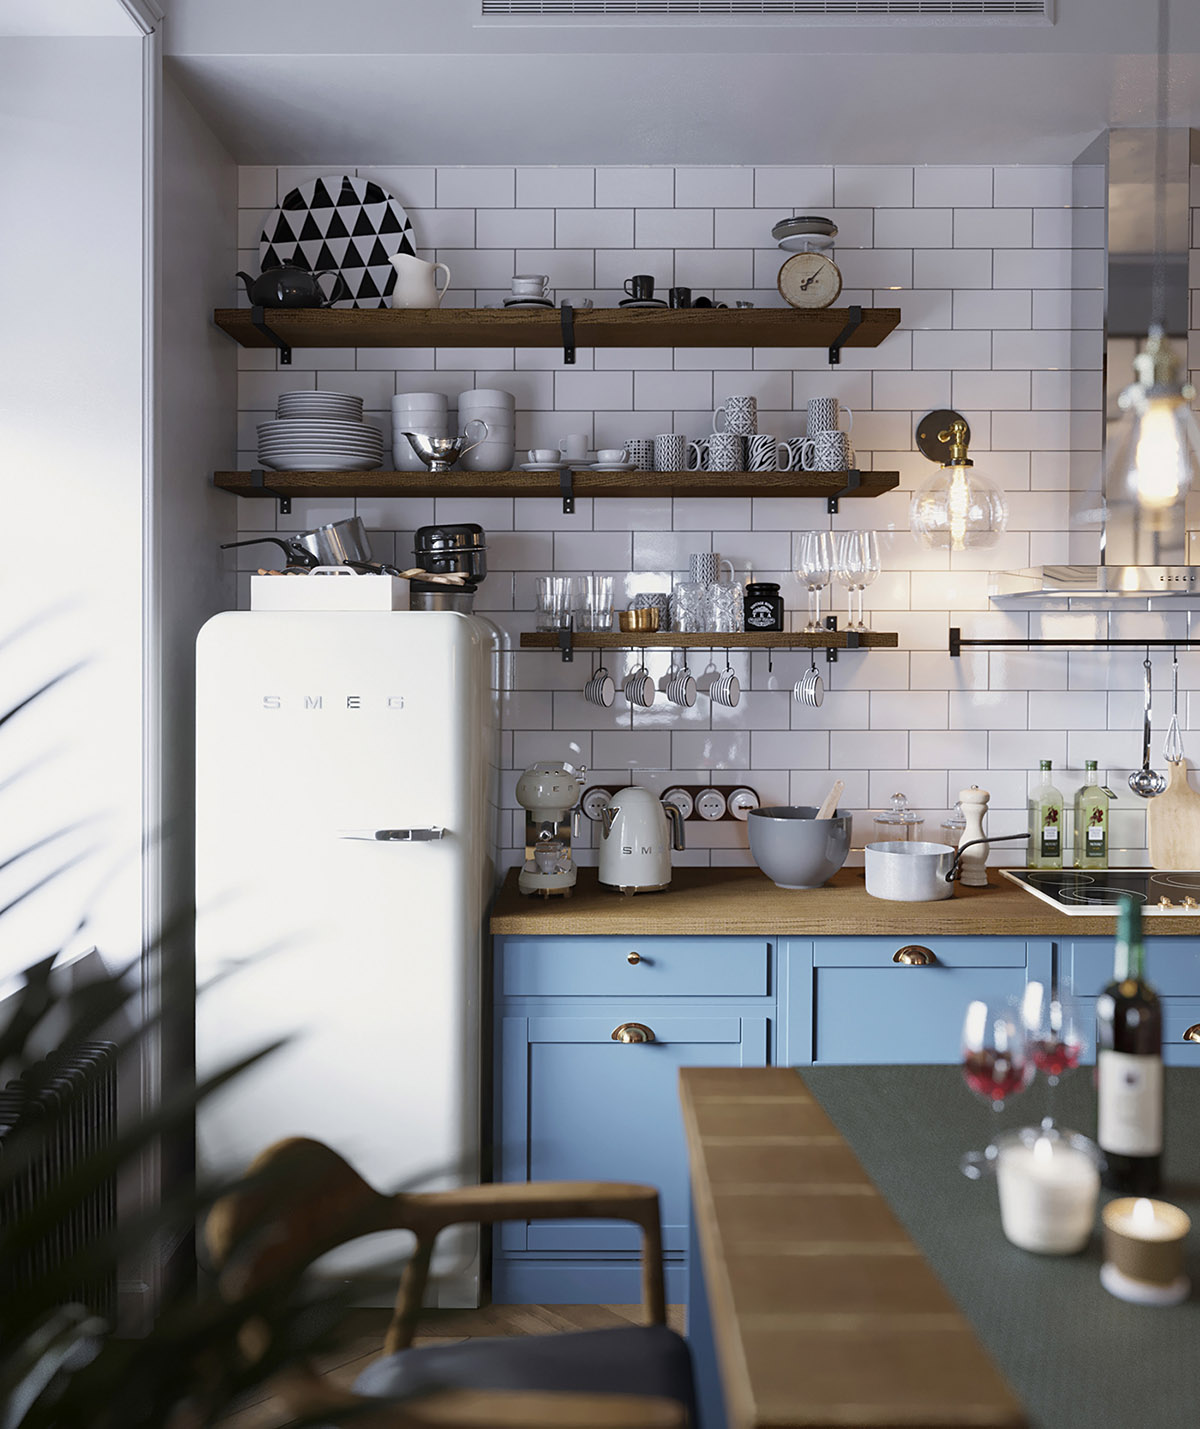 Earthy Eclectic Scandinavian Style Interior images 14